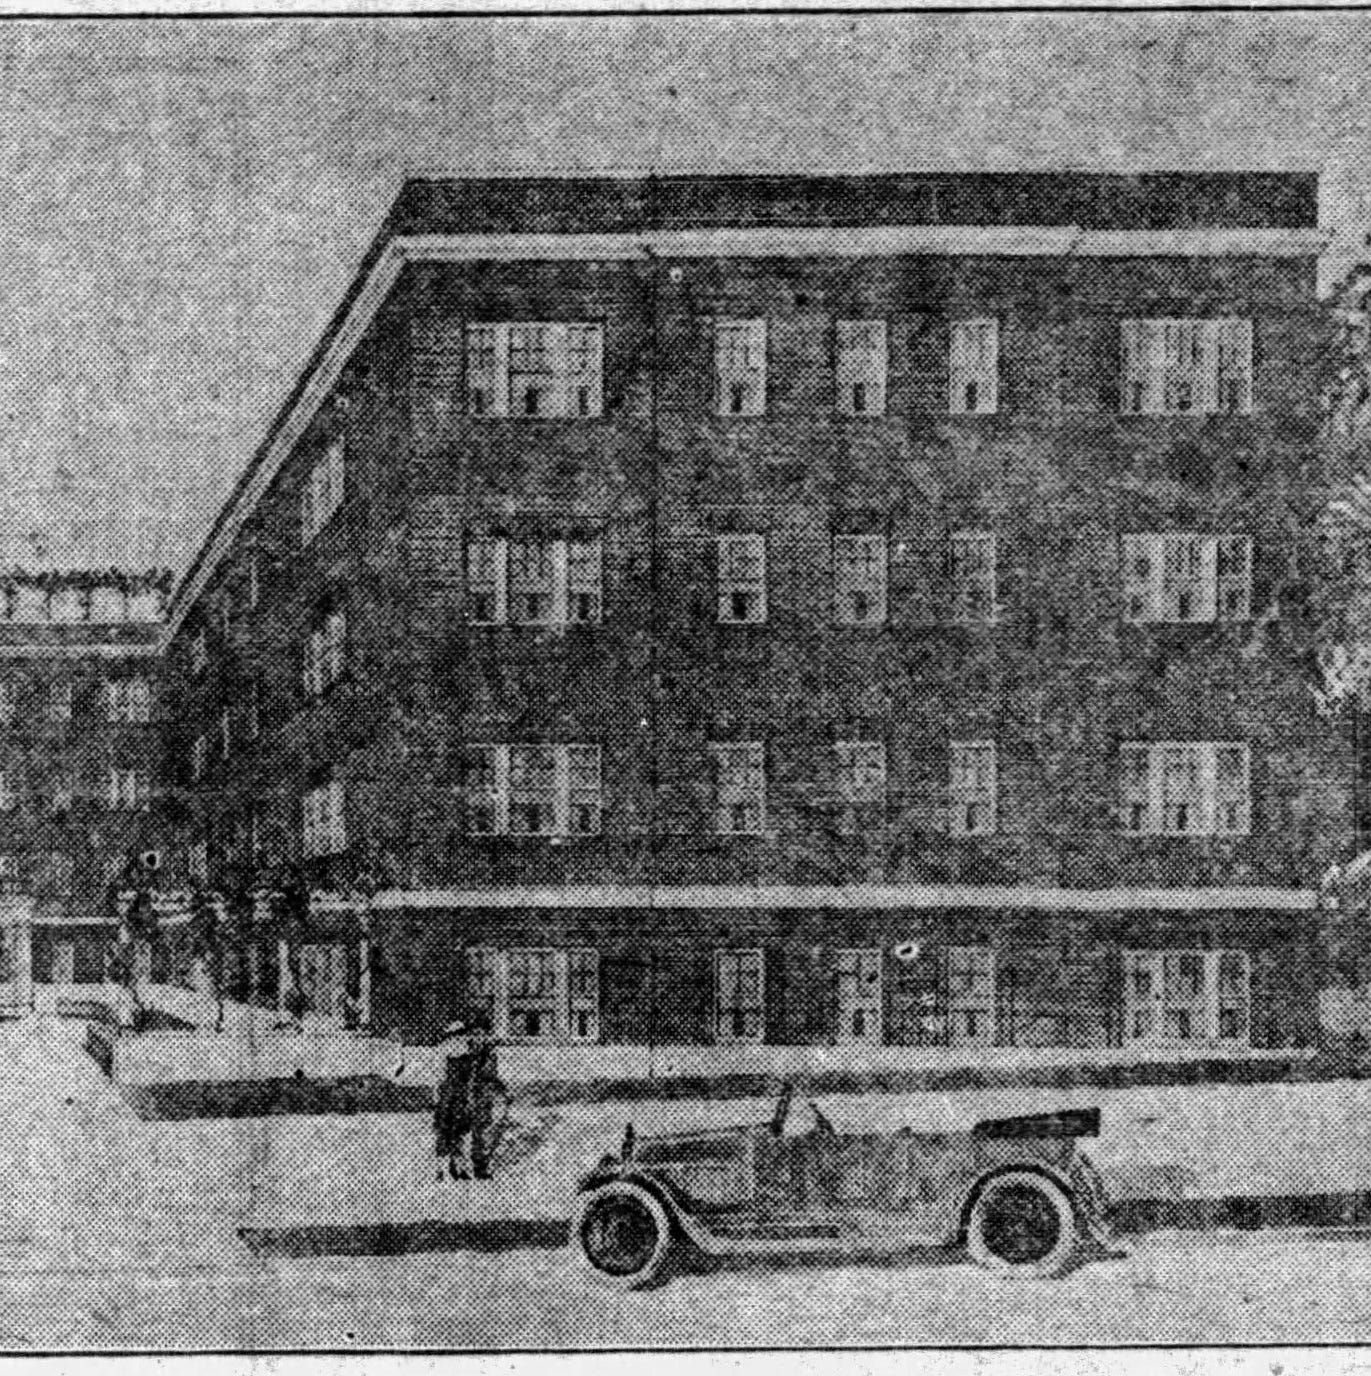 Looking Back: High society apartments in 1920s Sioux Falls